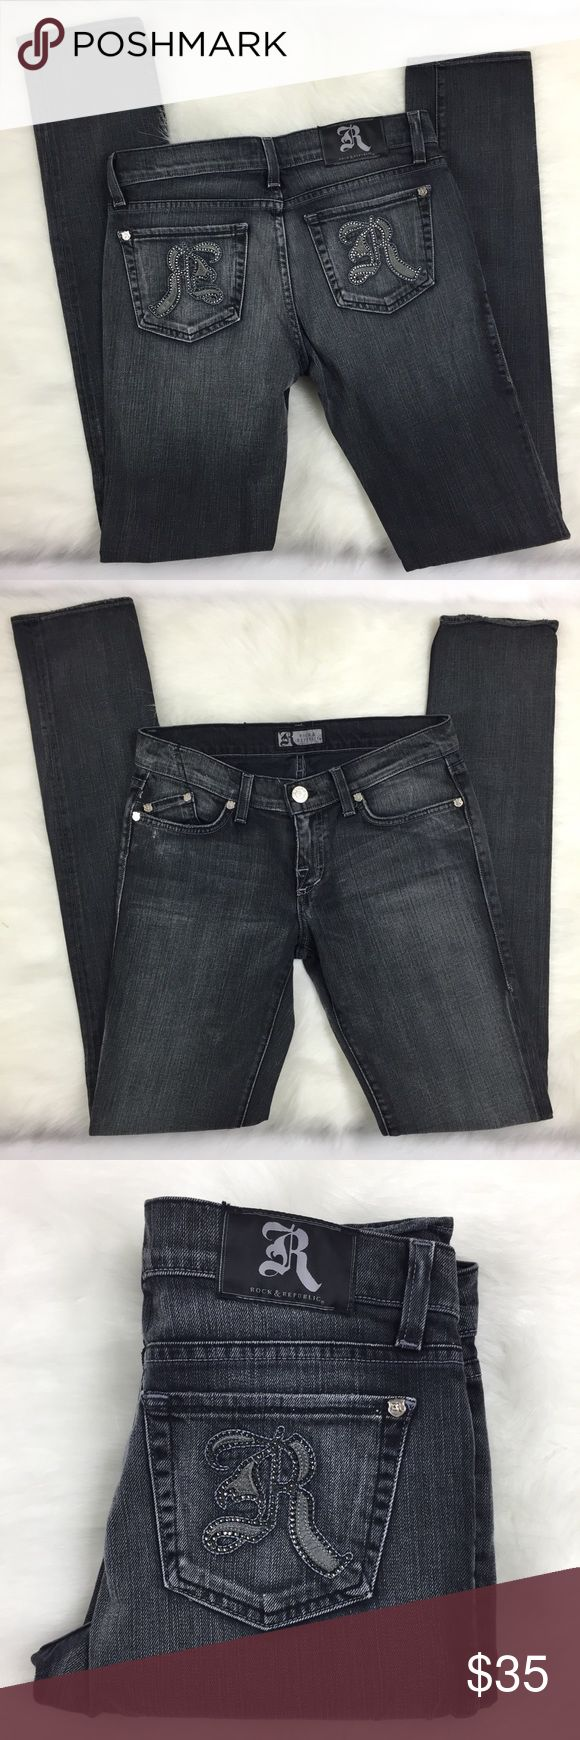 """Rock & Republic Jeans Berlin Slim Straight Rock & Republic Womens Jeans Berlin Slim Straight Skinny Dark Gray Size 27 Bling  Zip fly with button closure Condition: Excellent Used Condition Size Tag: 27 Measurements: Waist: 15"""" Rise: 8"""" Inseam: 35""""  Please follow me for more great items and sweet deals! Rock & Republic Jeans Straight Leg"""